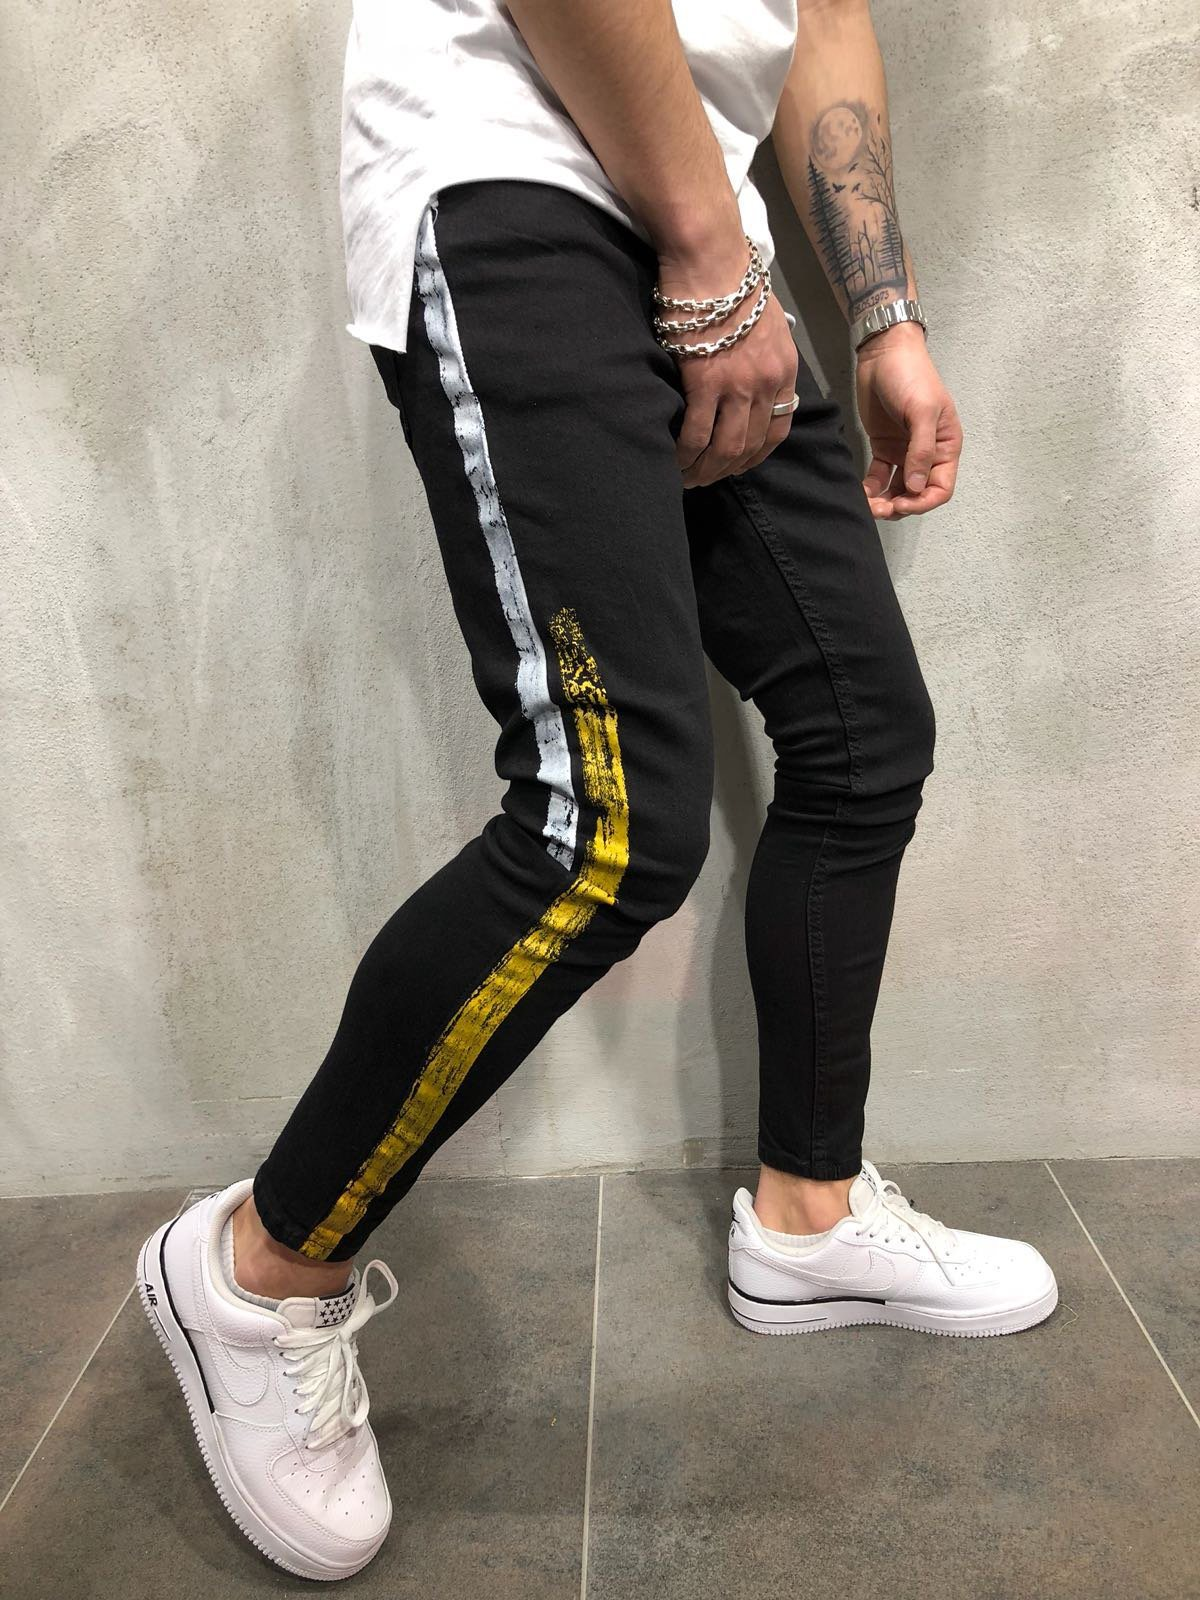 High Street Trend Men S Jeans Fashion Slim Printed Pants Men S Trendy Pants China Denim Jeans And Fashion Jeans Price Made In China Com